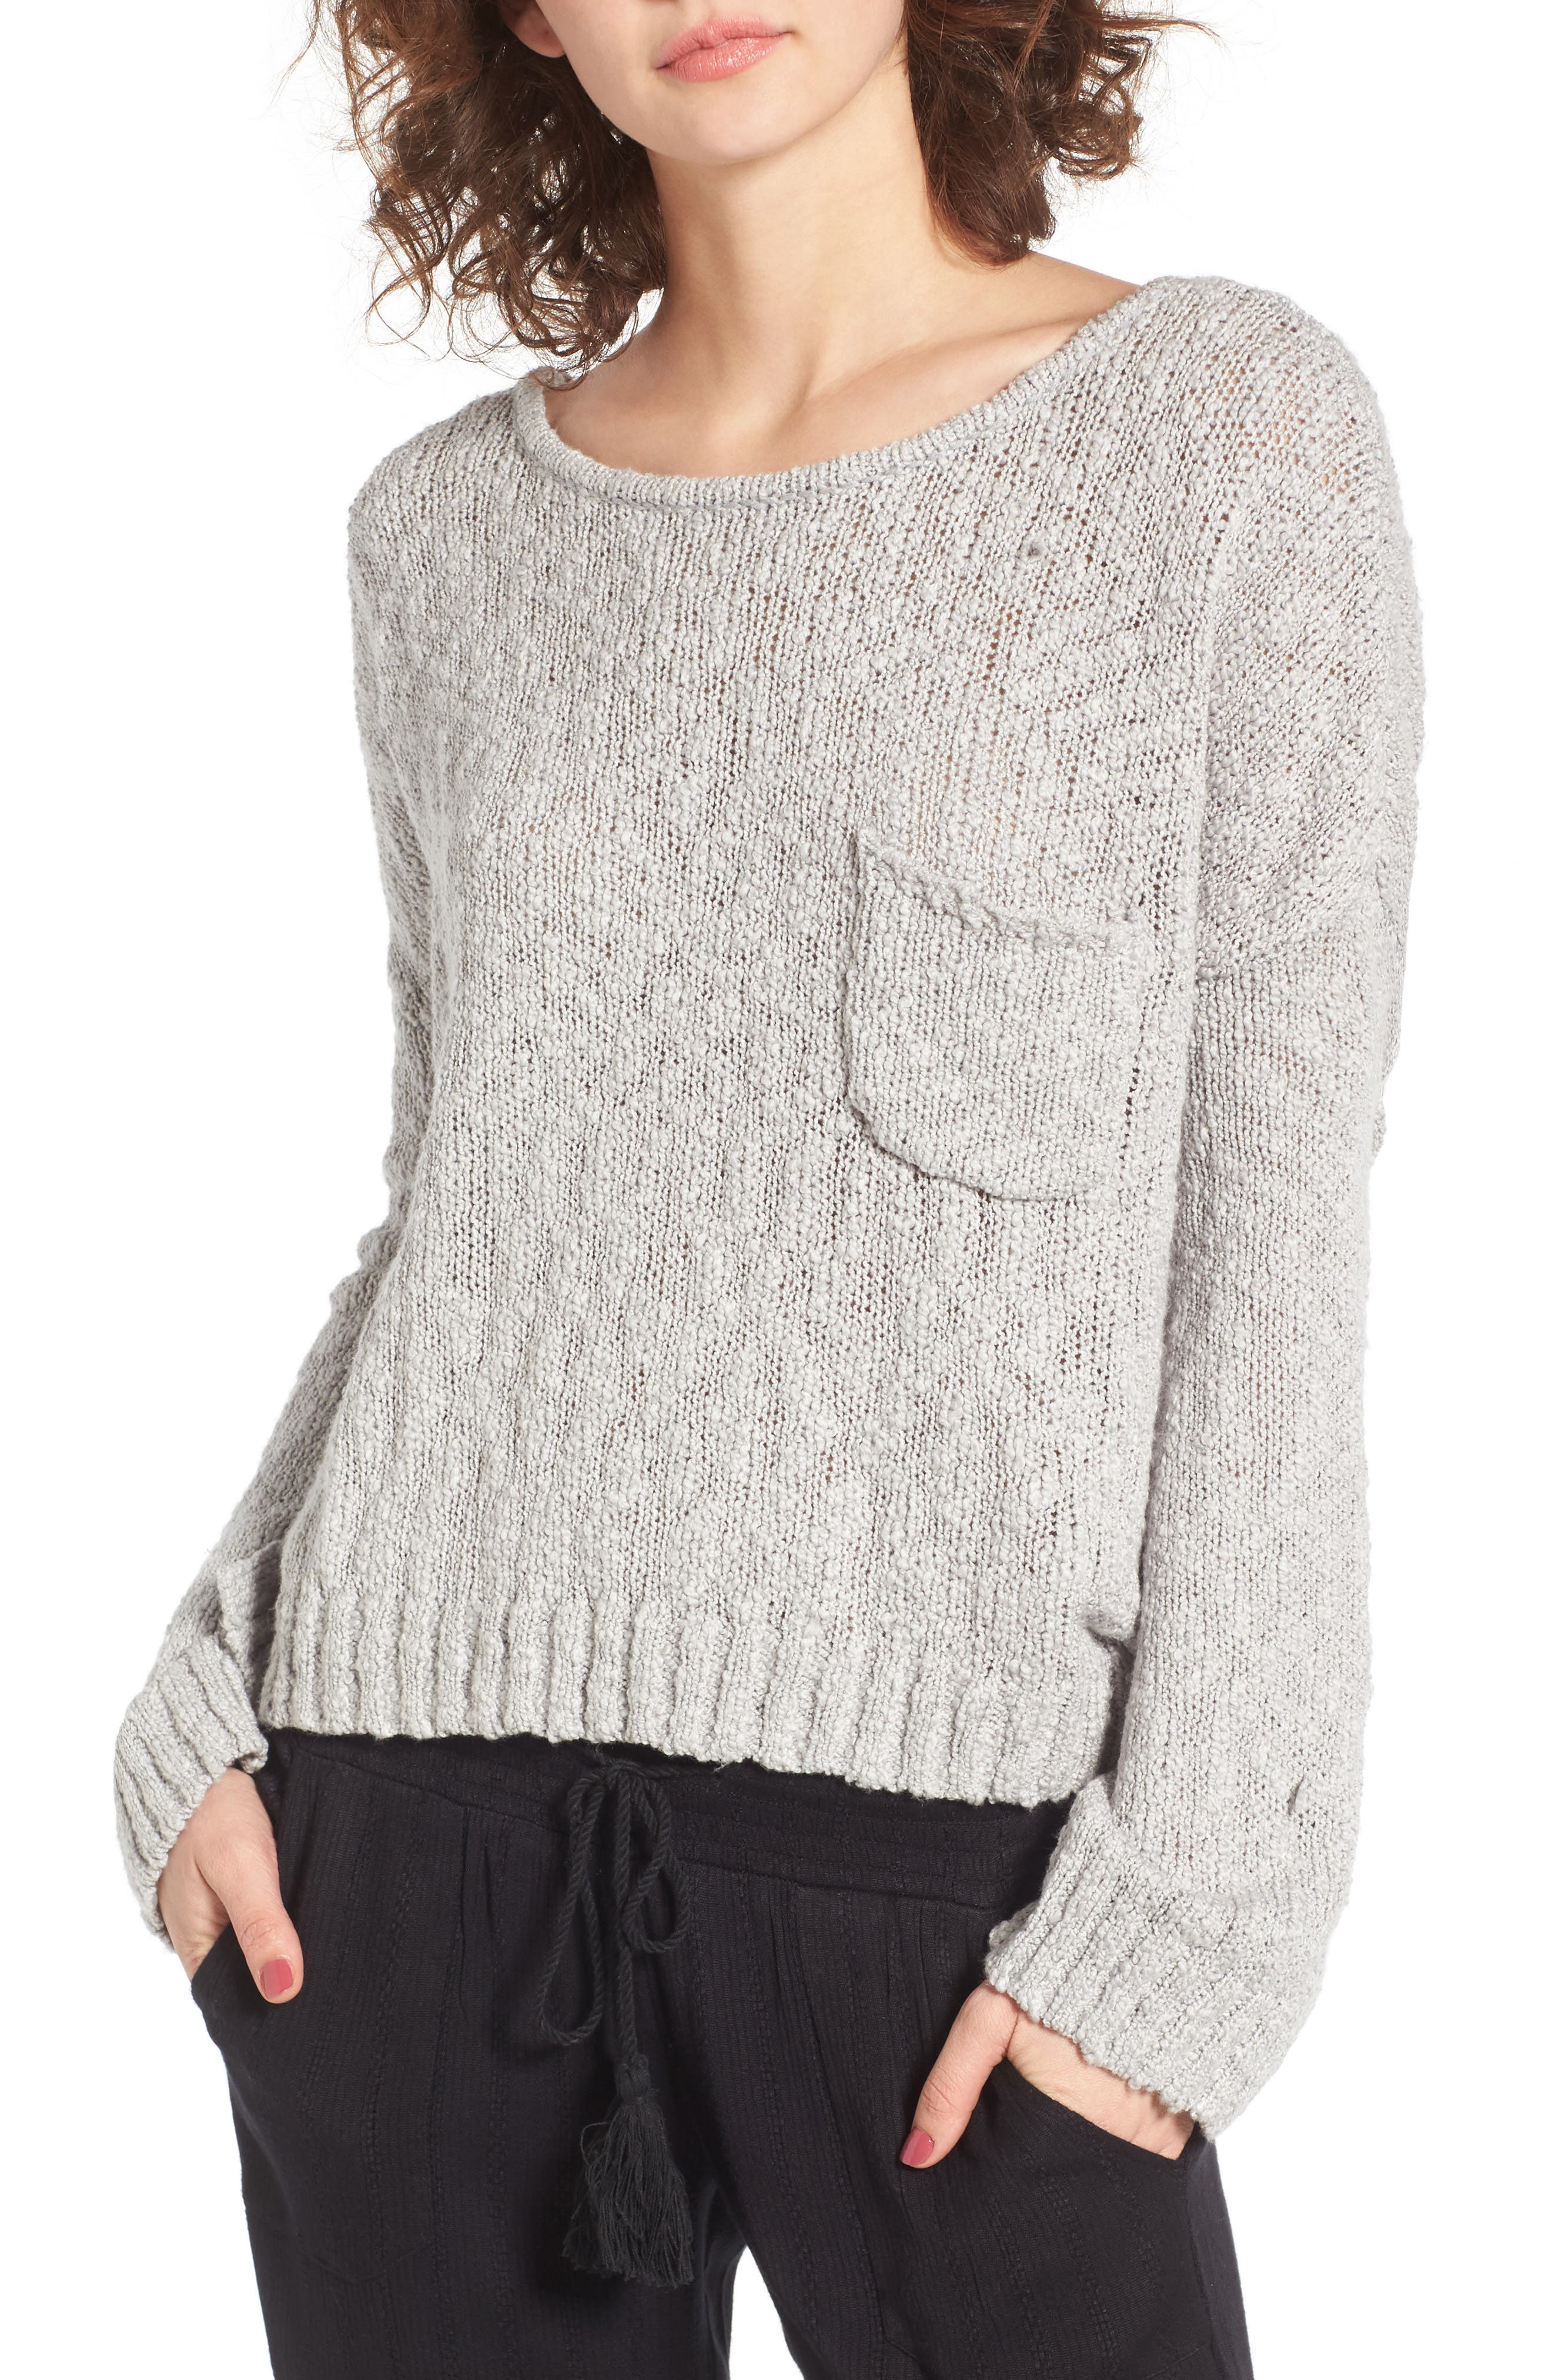 Roxy Juniors Dont Think Twice Cropped Sweater